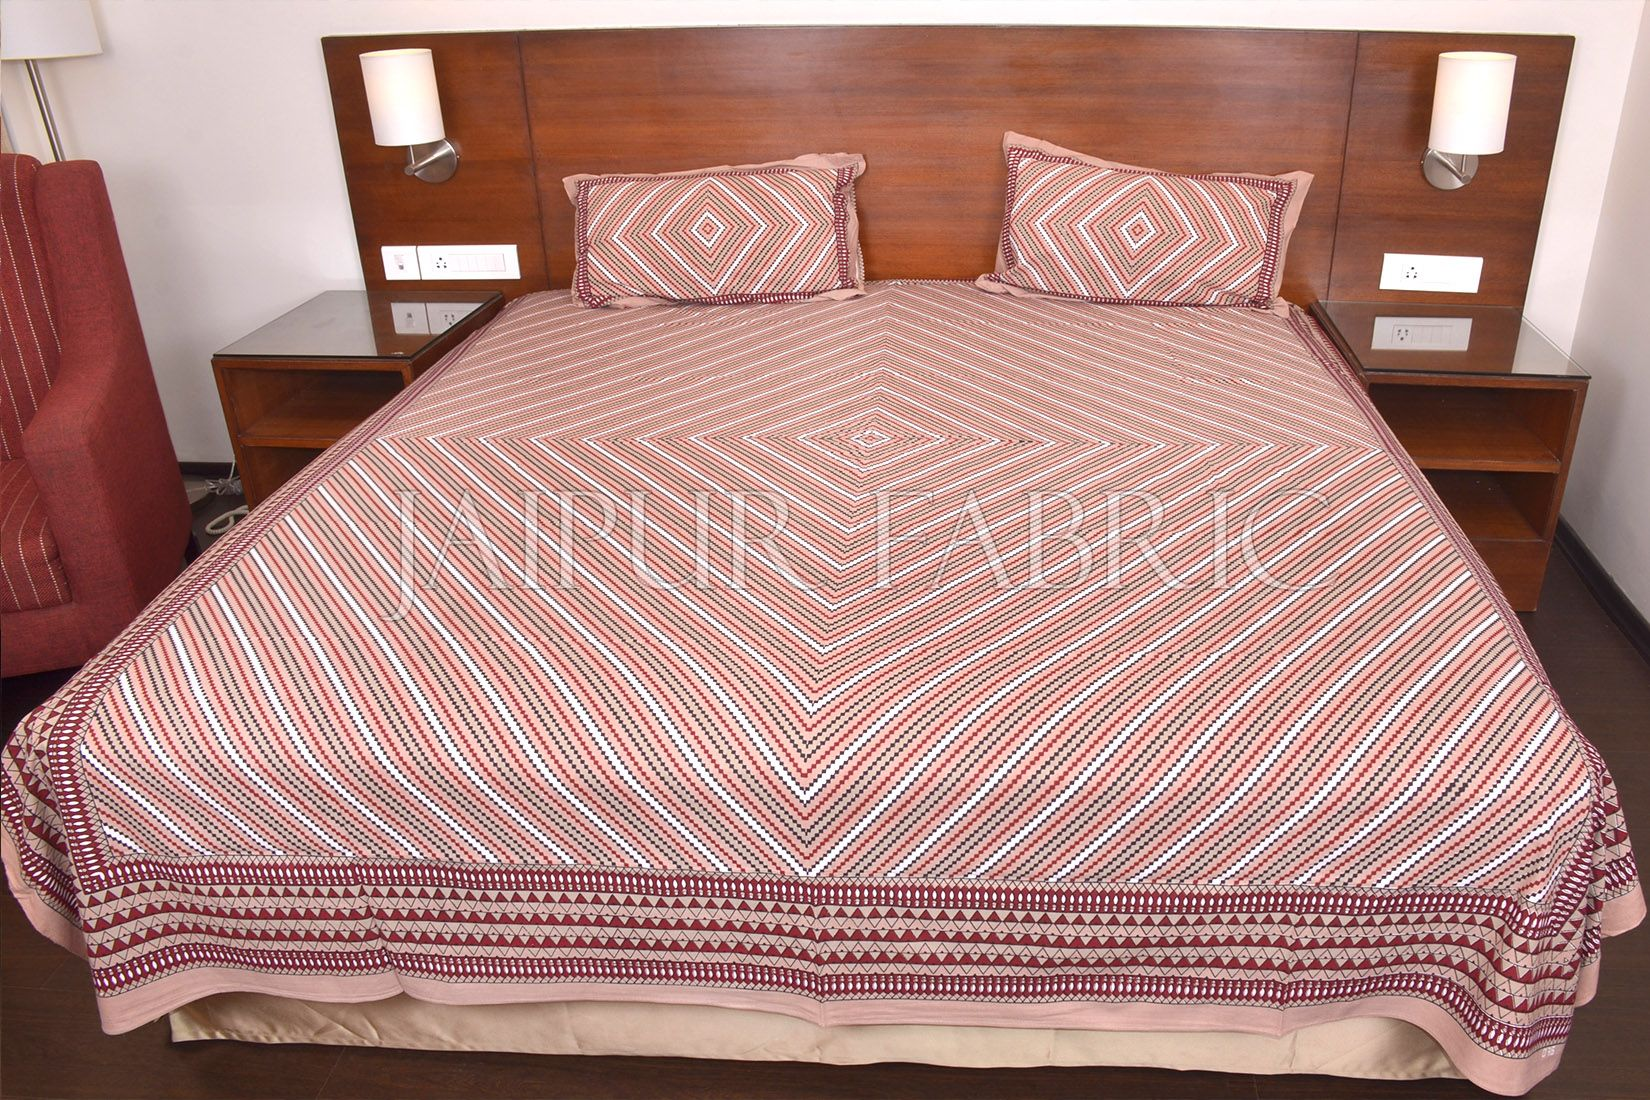 Brown Zick Zack Print Double Bed Sheet